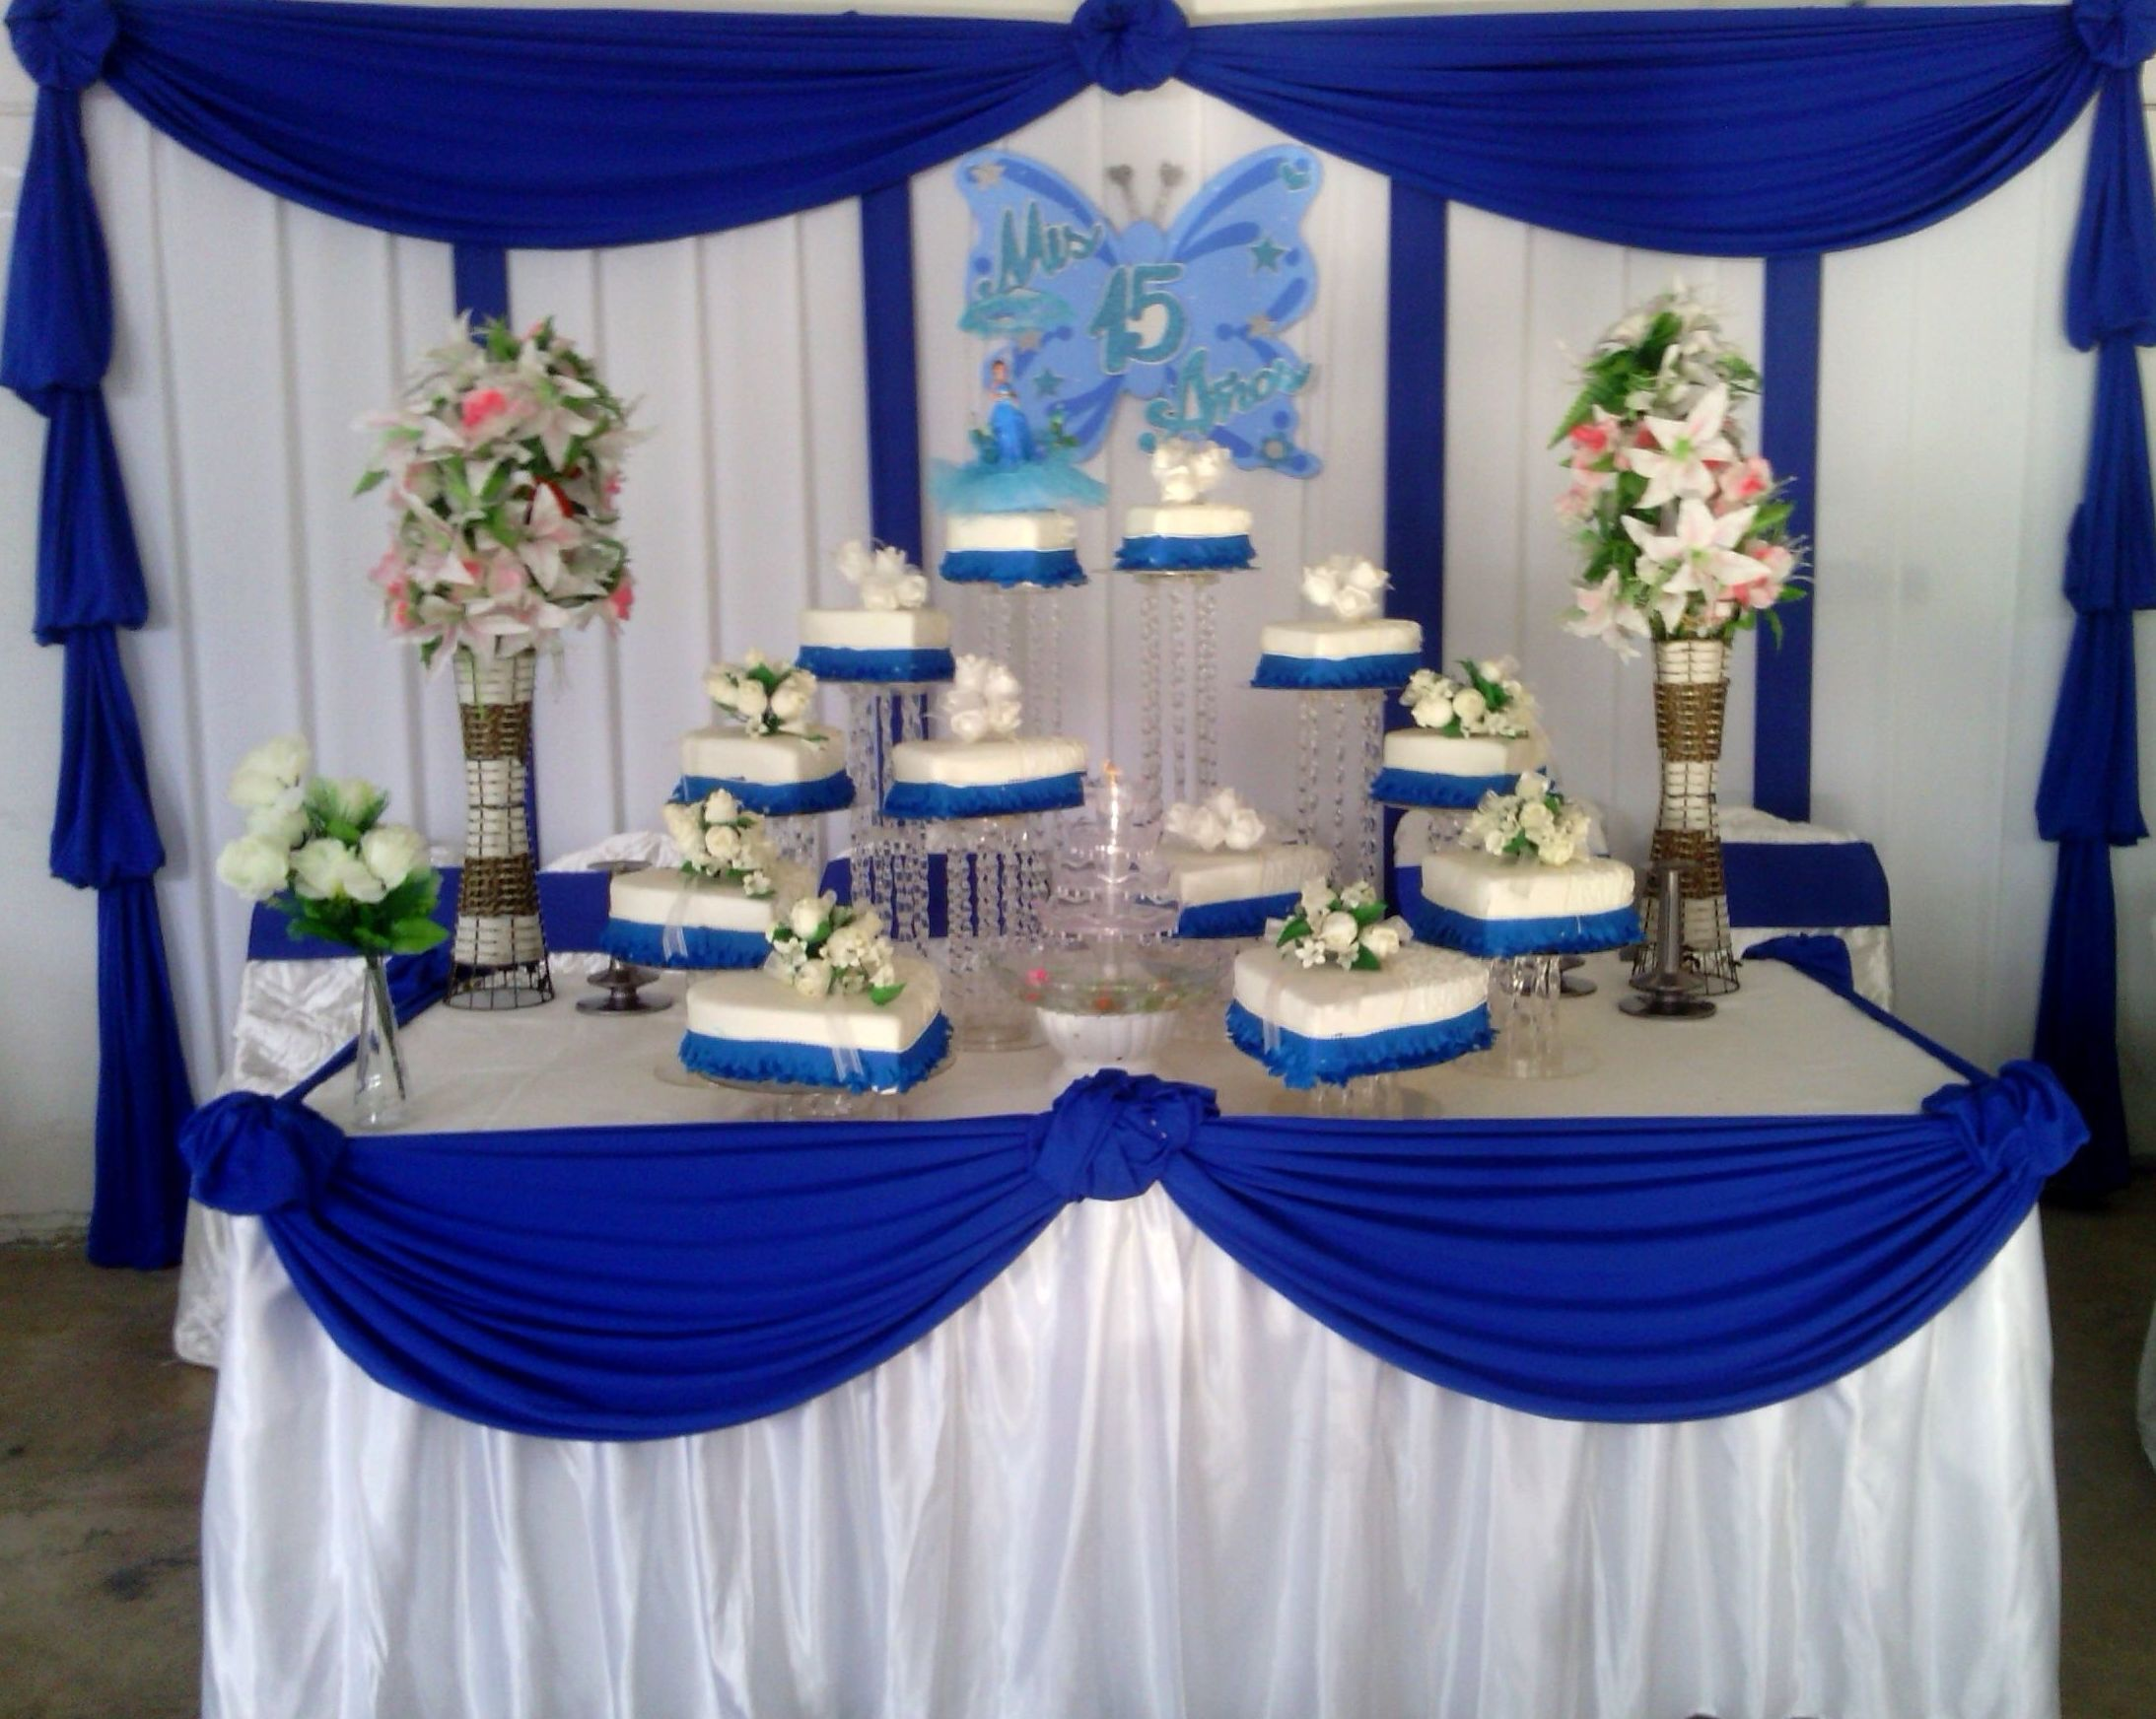 Decoraciones en color azul especial para quince a os for Ideas faciles decoracion